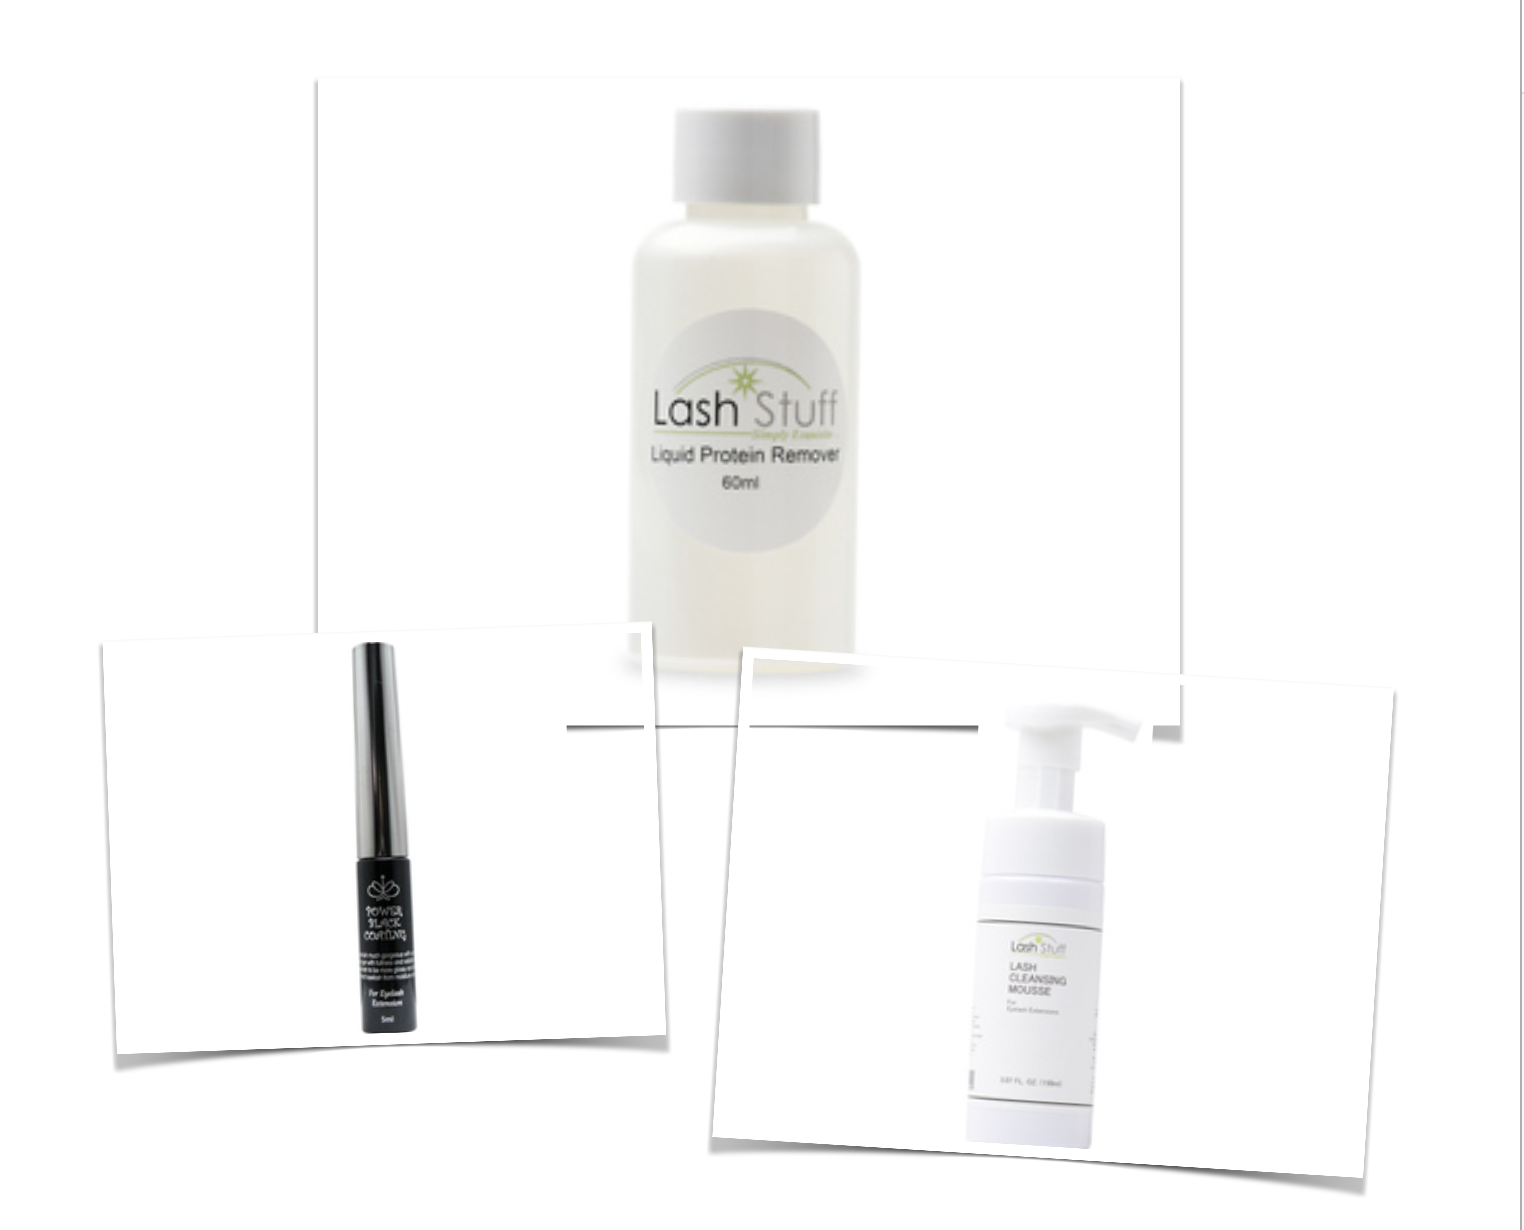 eyelash extension supplies